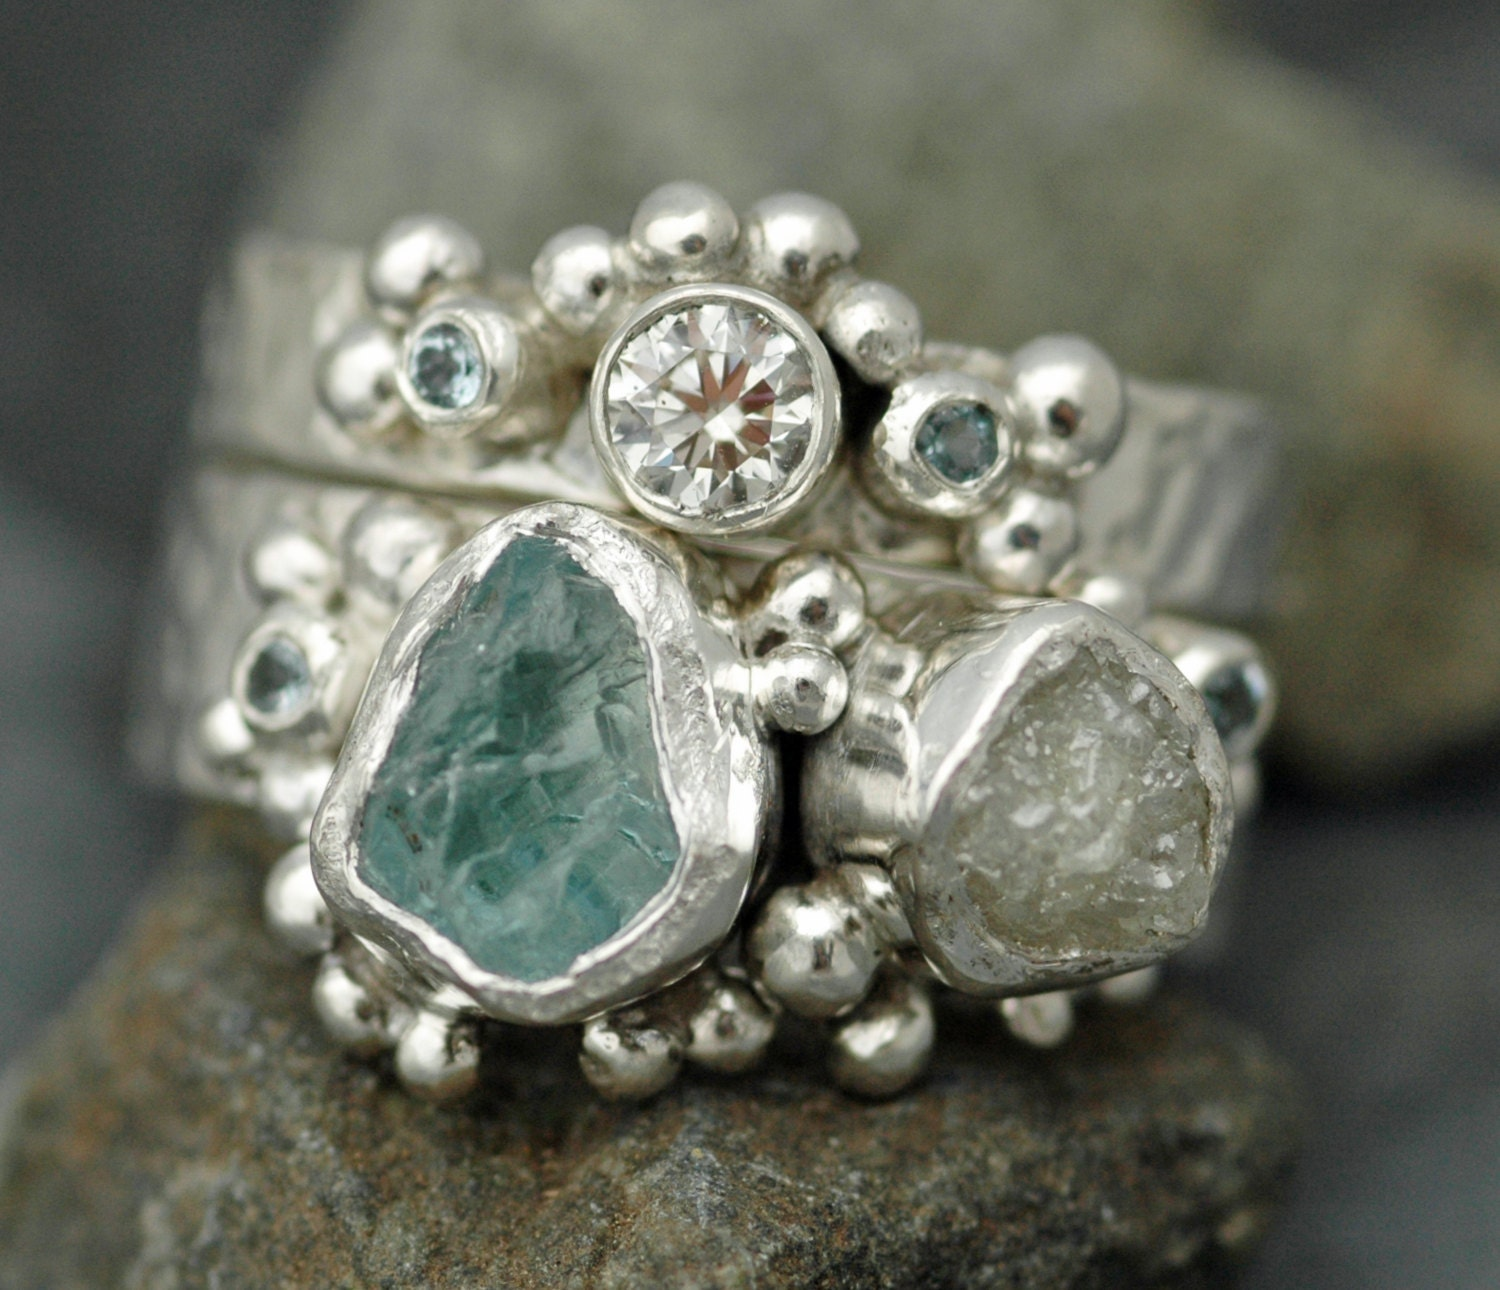 Raw Aquamarine Rough and Cut Diamond Sterling Silver or Gold